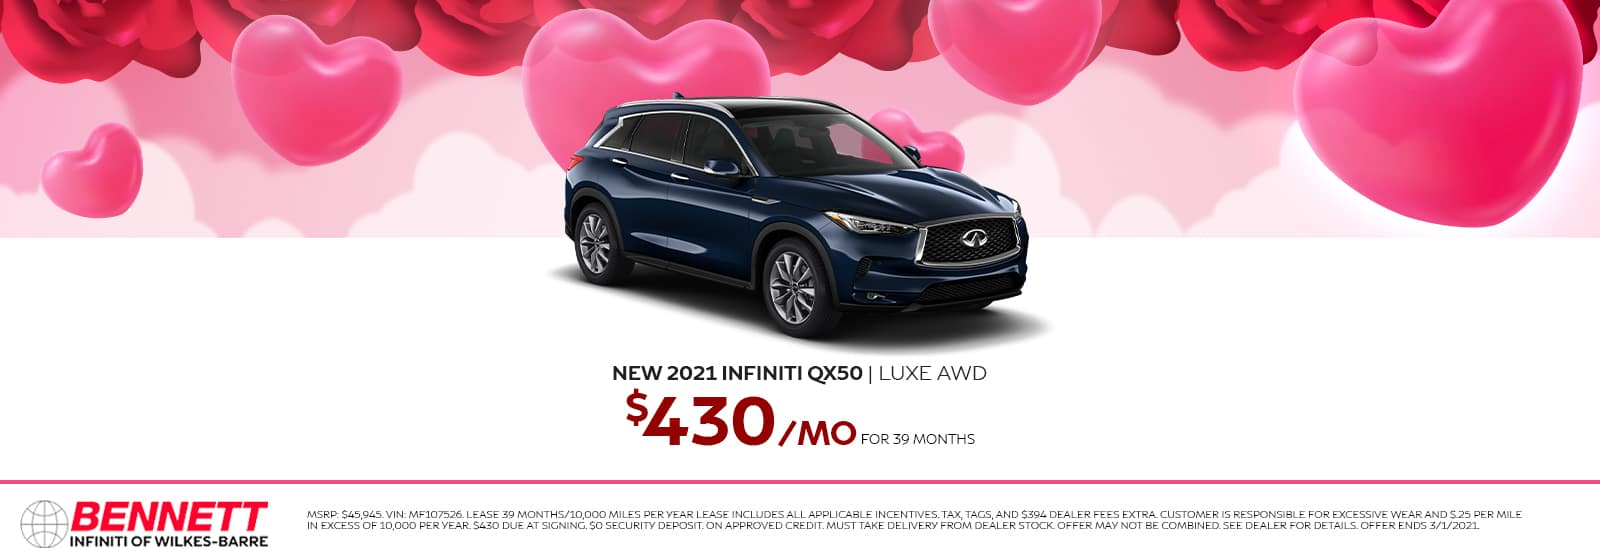 New 2021 INFINITI QX50 LUXE AWD - $430/mo for 39 months.